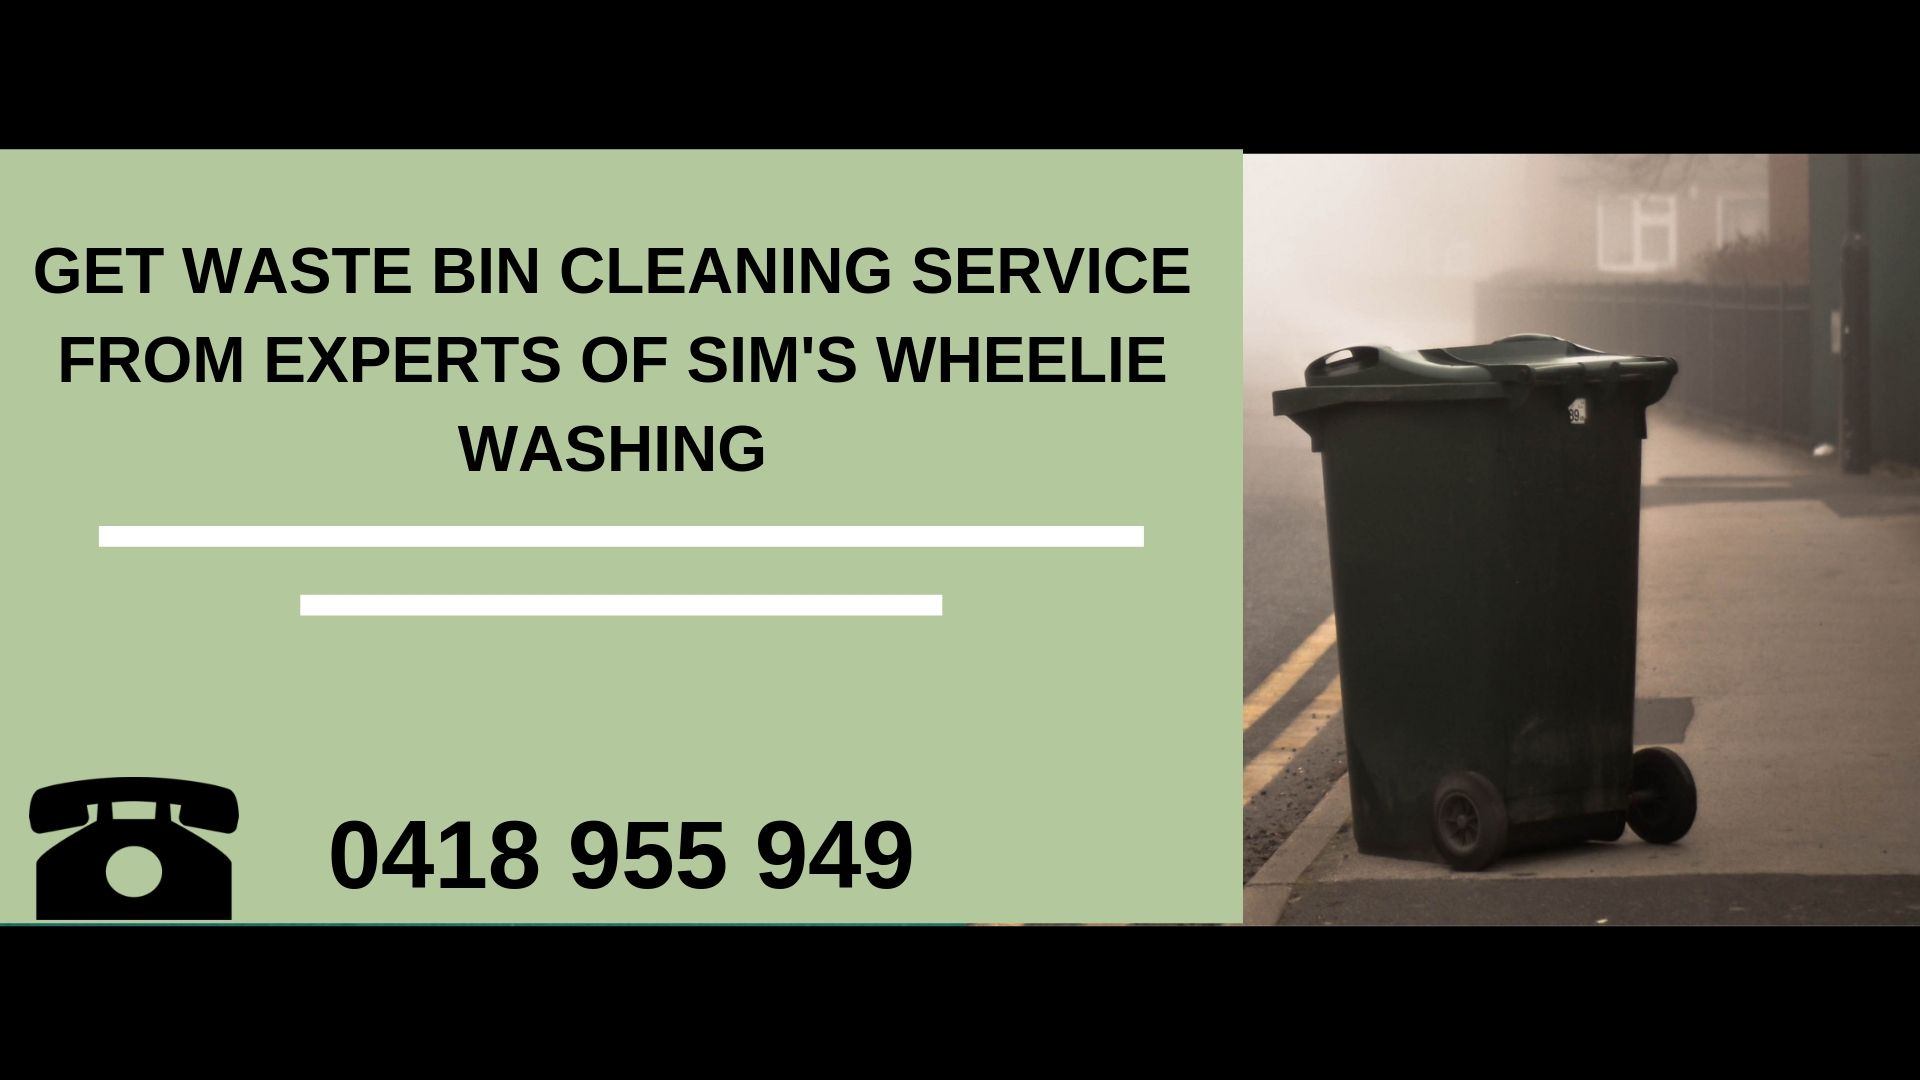 Get waste bin cleaning service from experts cleaning